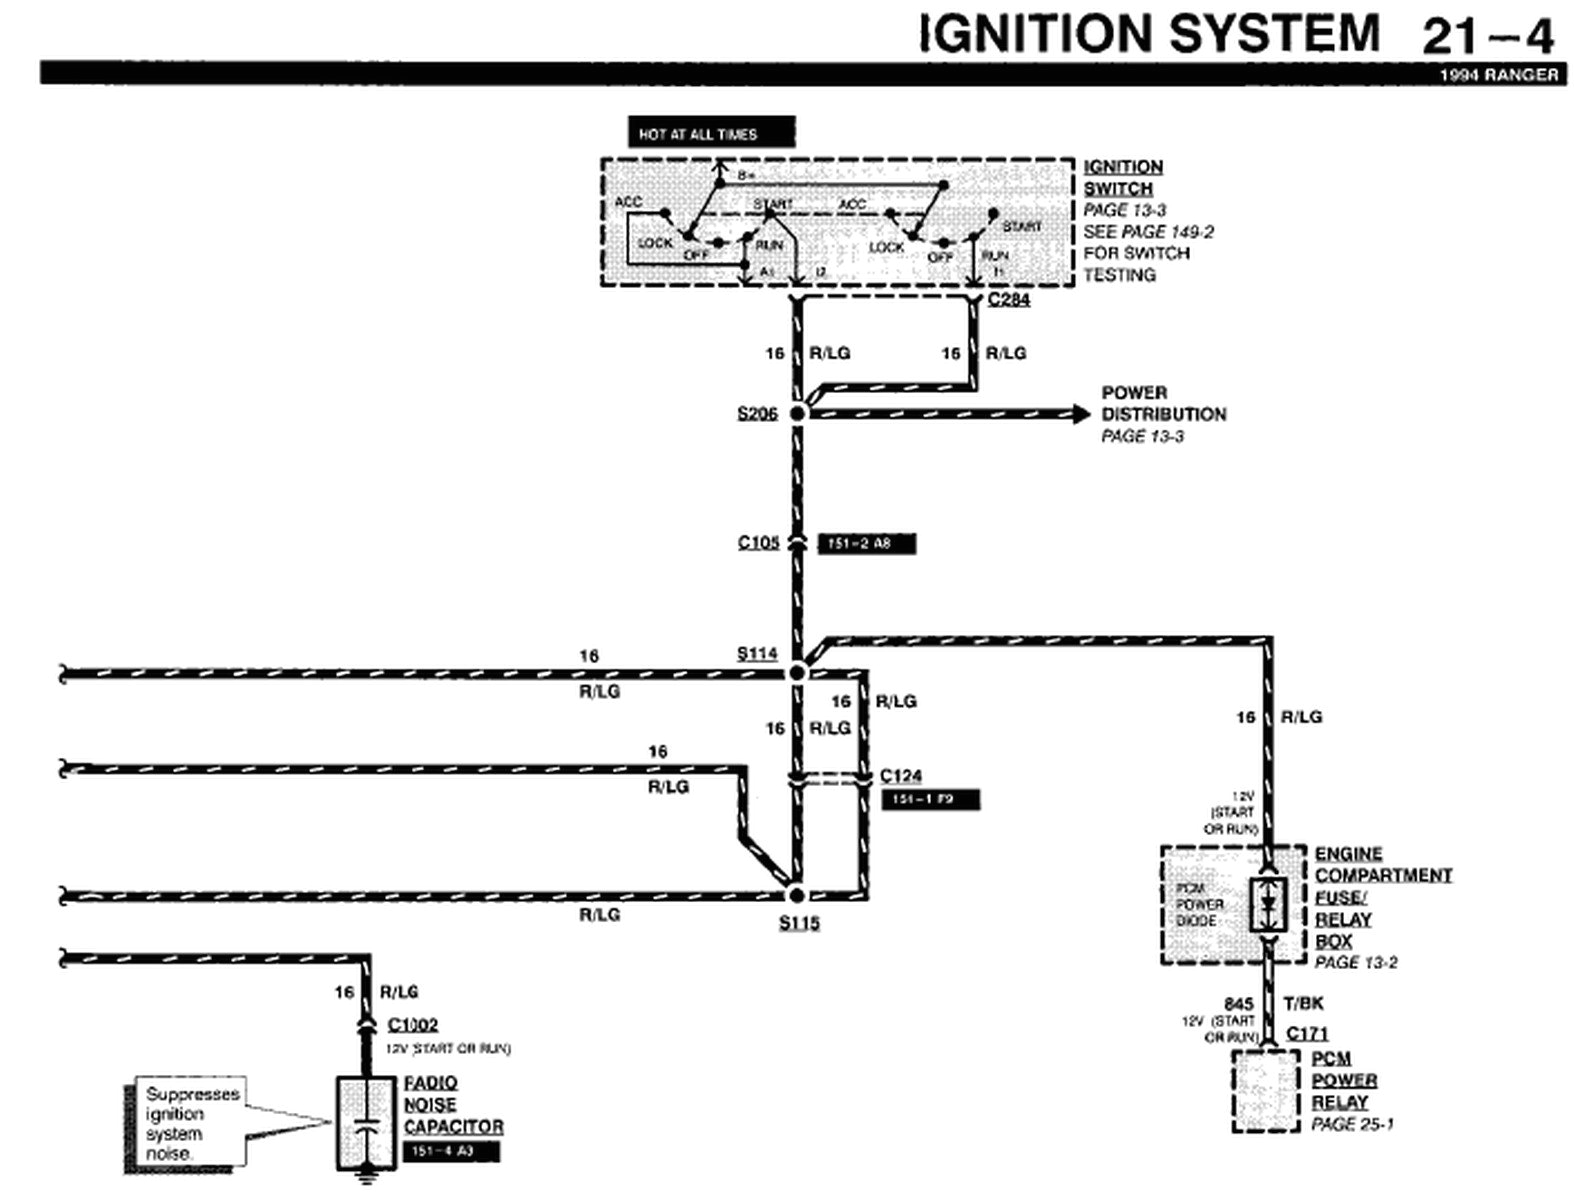 3e3p5 1994 ford ranger locate diagram electrical wiring system